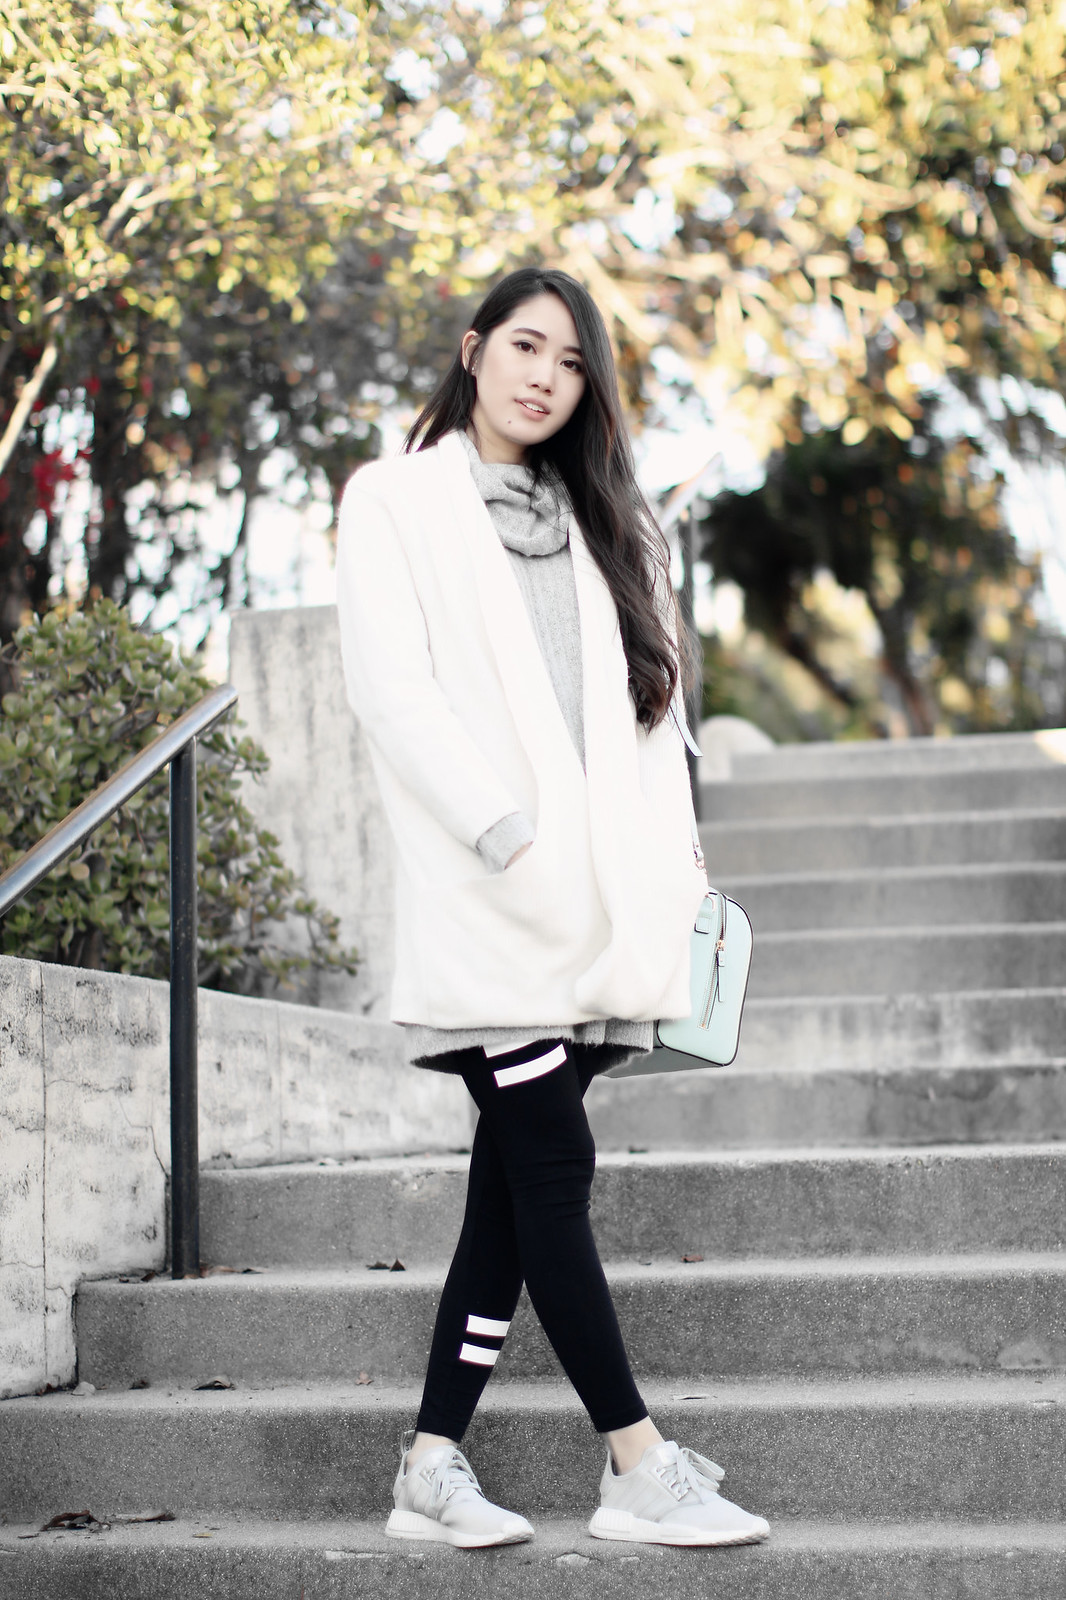 1527-ootd-fashion-style-tobi-cowl-neck-turtleneck-sweater-dress-asianfashion-koreanfashion-winterfashion-clothestoyouuu-elizabeeetht